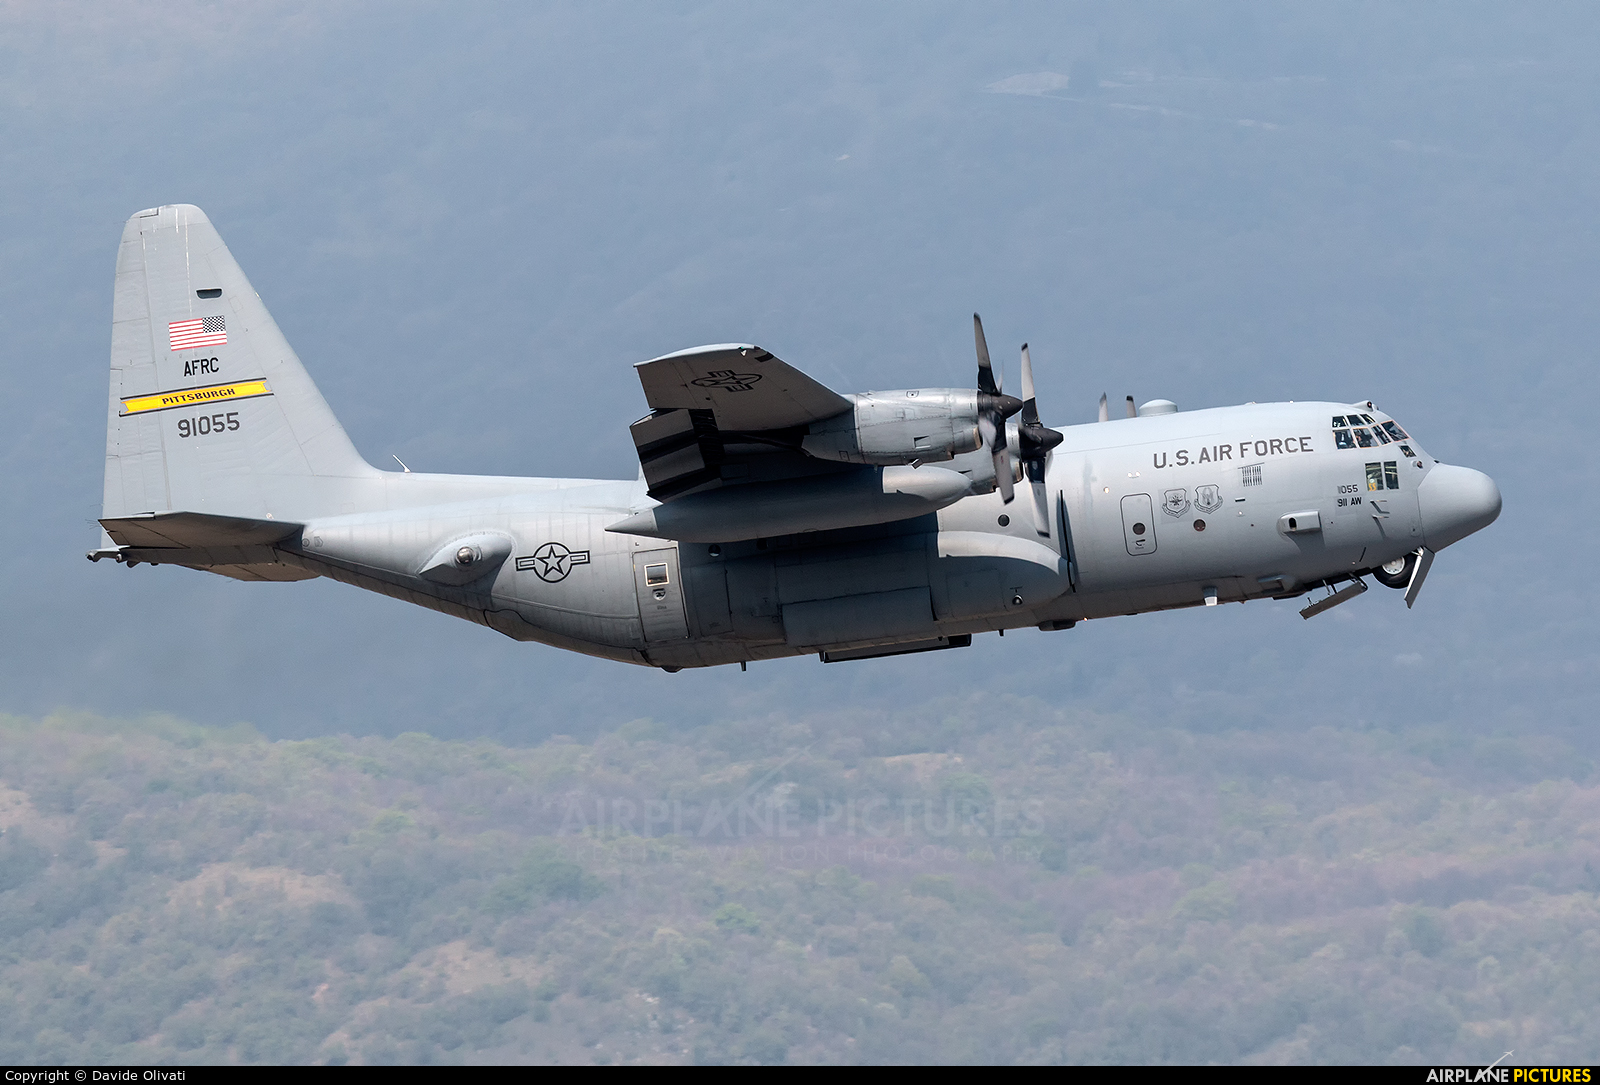 USA - Air Force 89-1055 aircraft at Aviano